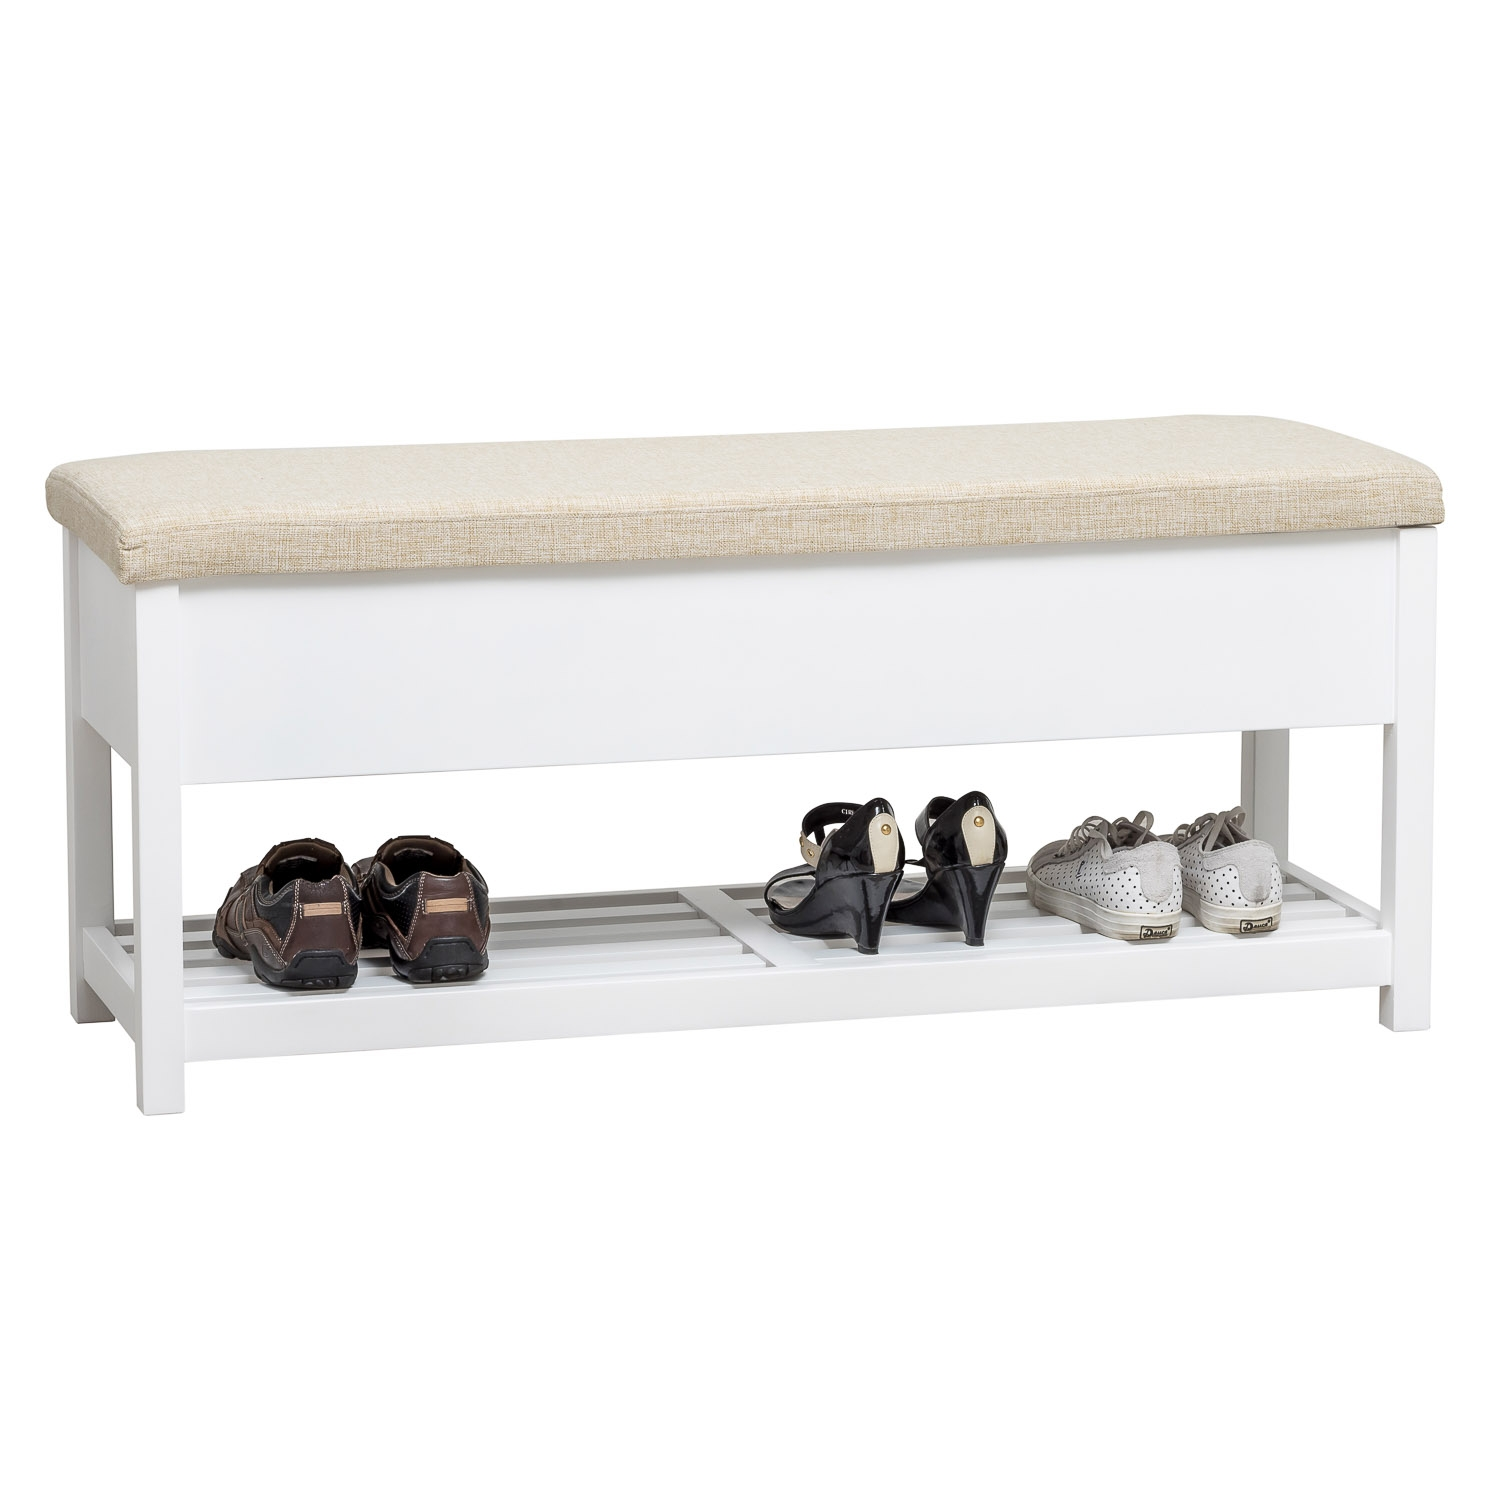 Bench Seat With Storage From Storage Box